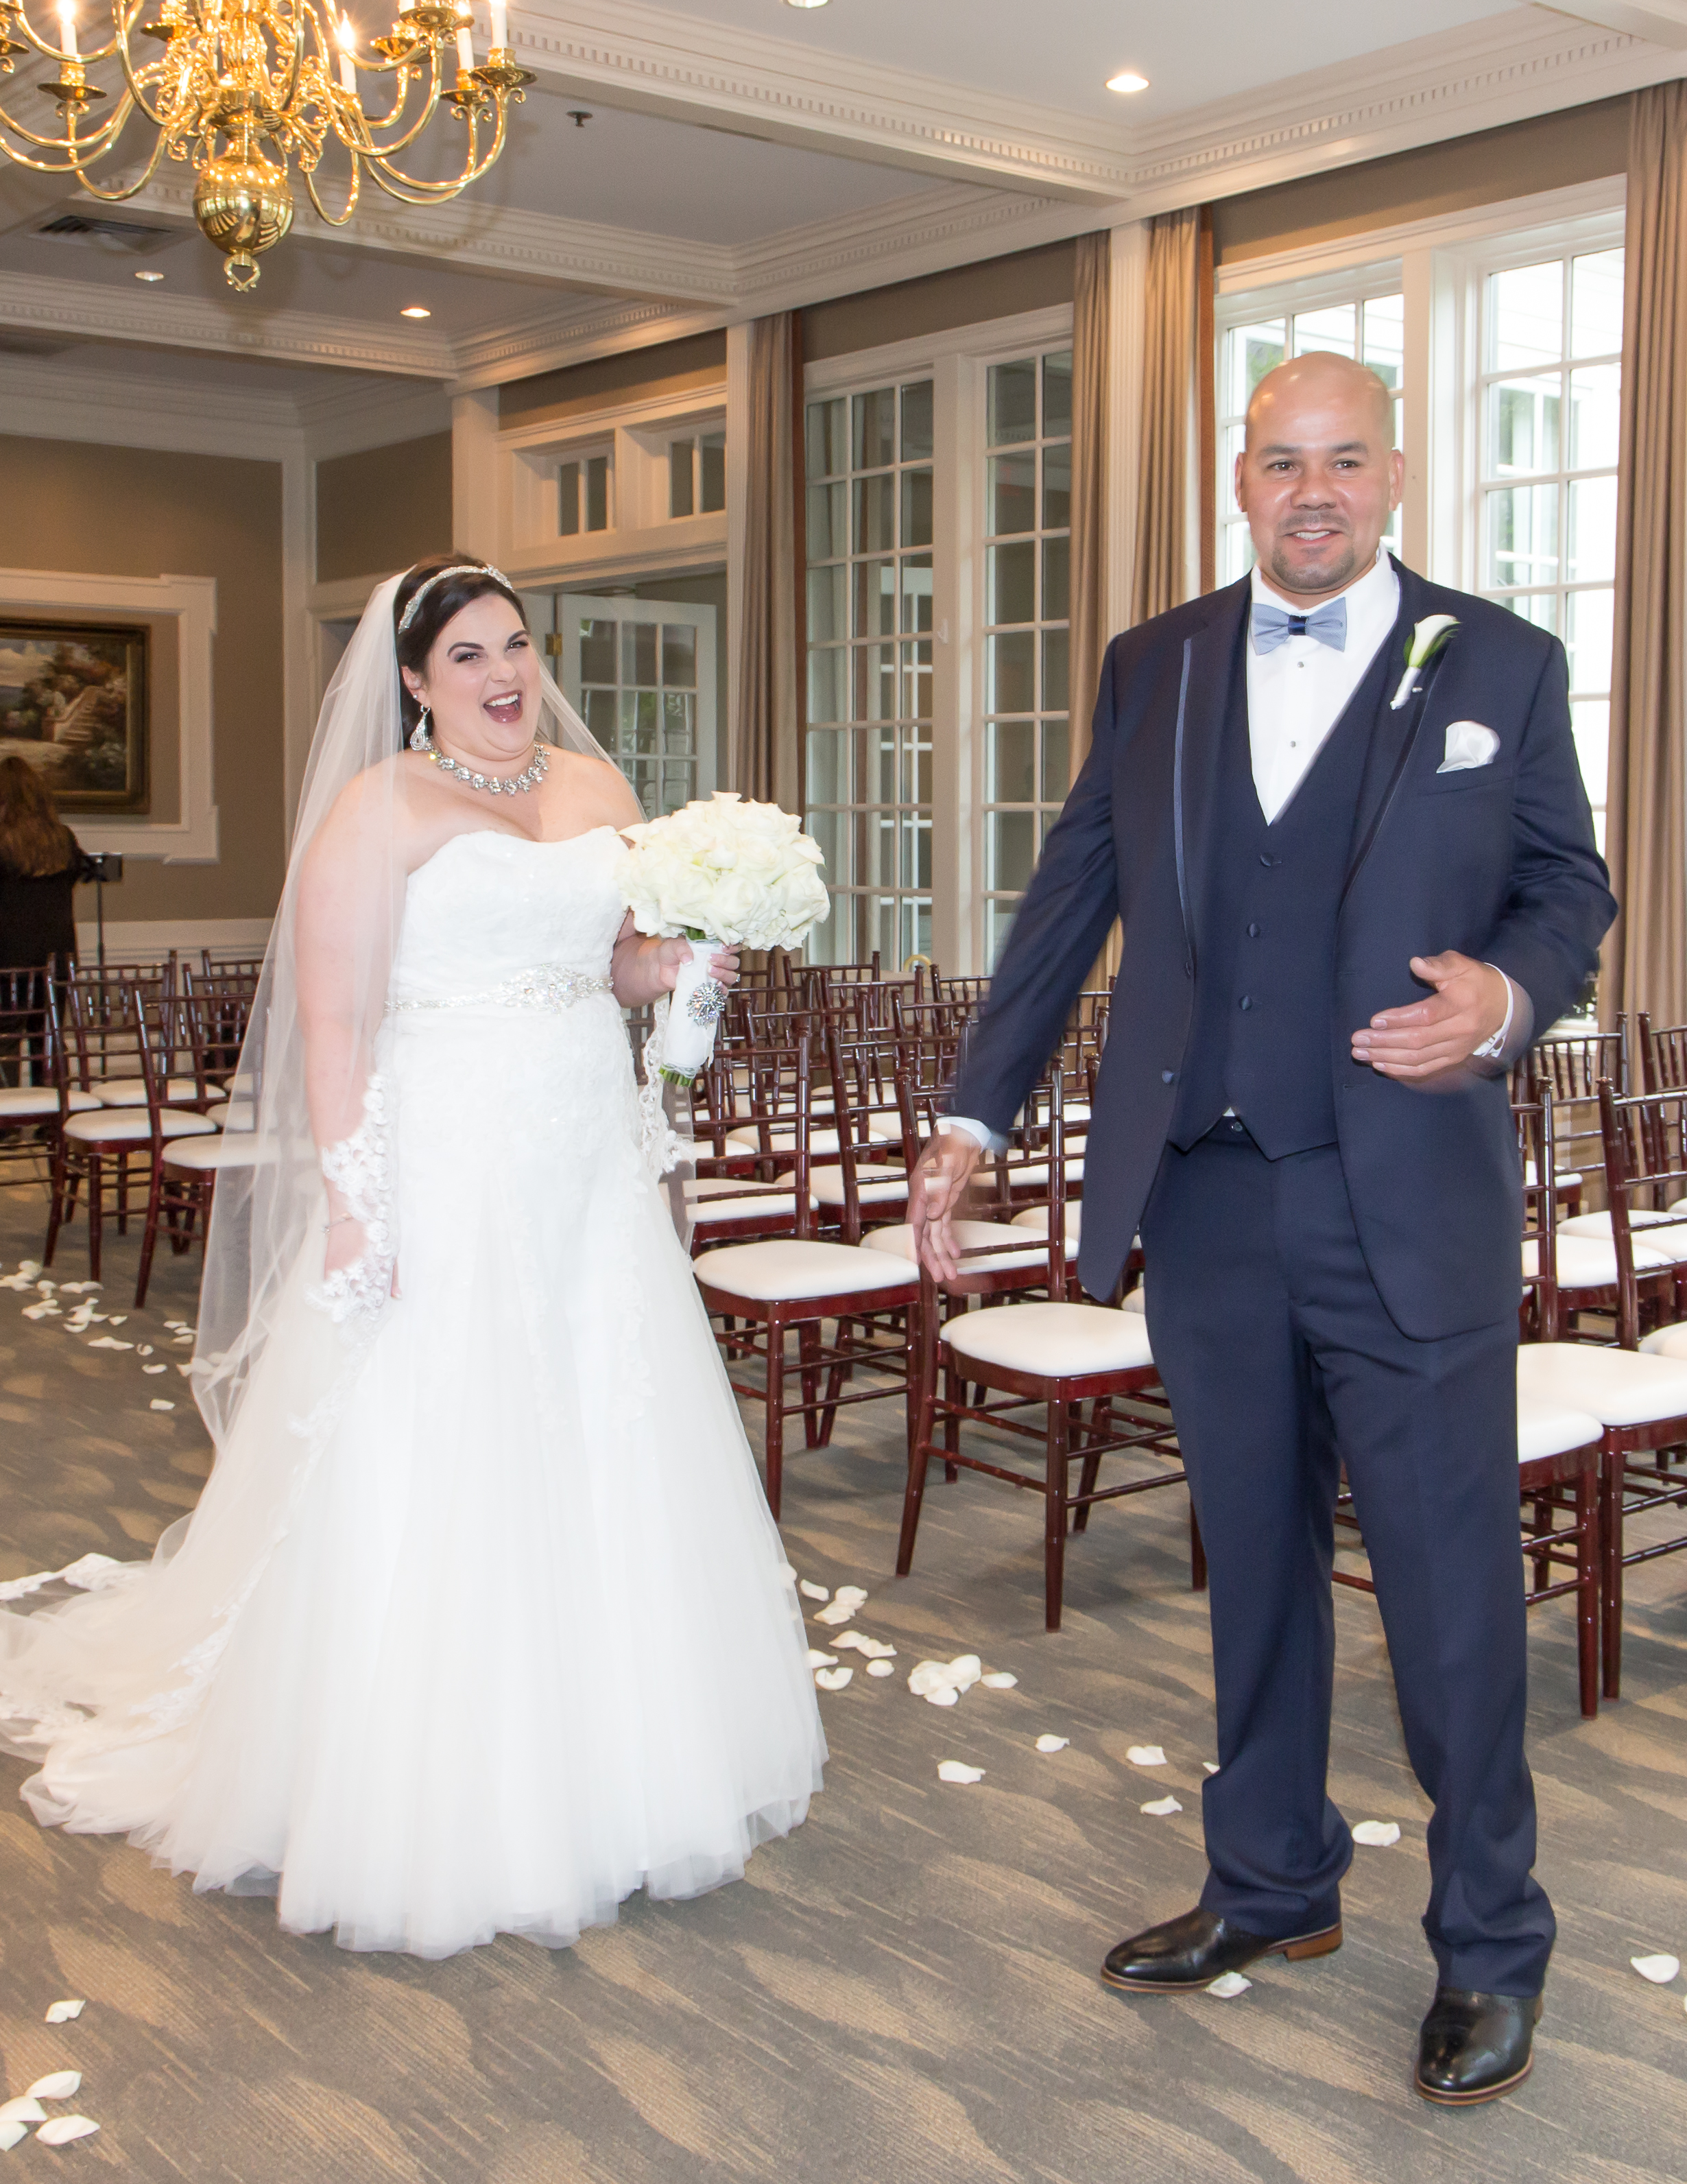 Elizabeth_Dennis Sierra Wedding April 22 2017-125